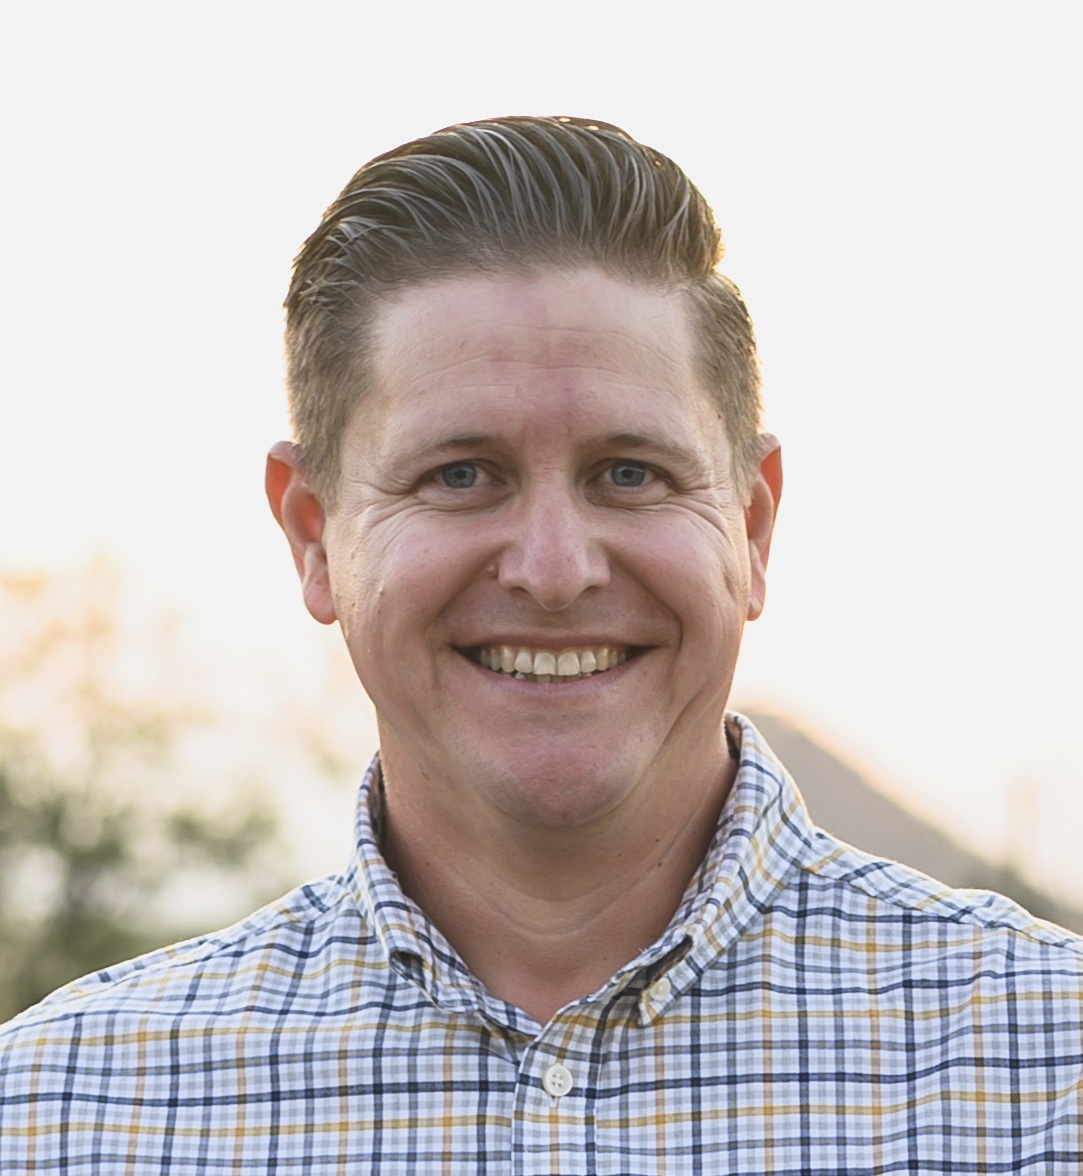 We're excited to welcome @scarter19 as our new Executive Vice President, based at the #SABR office in Phoenix. Learn more: https://t.co/ErzO80SScu https://t.co/kGaGYChhW1